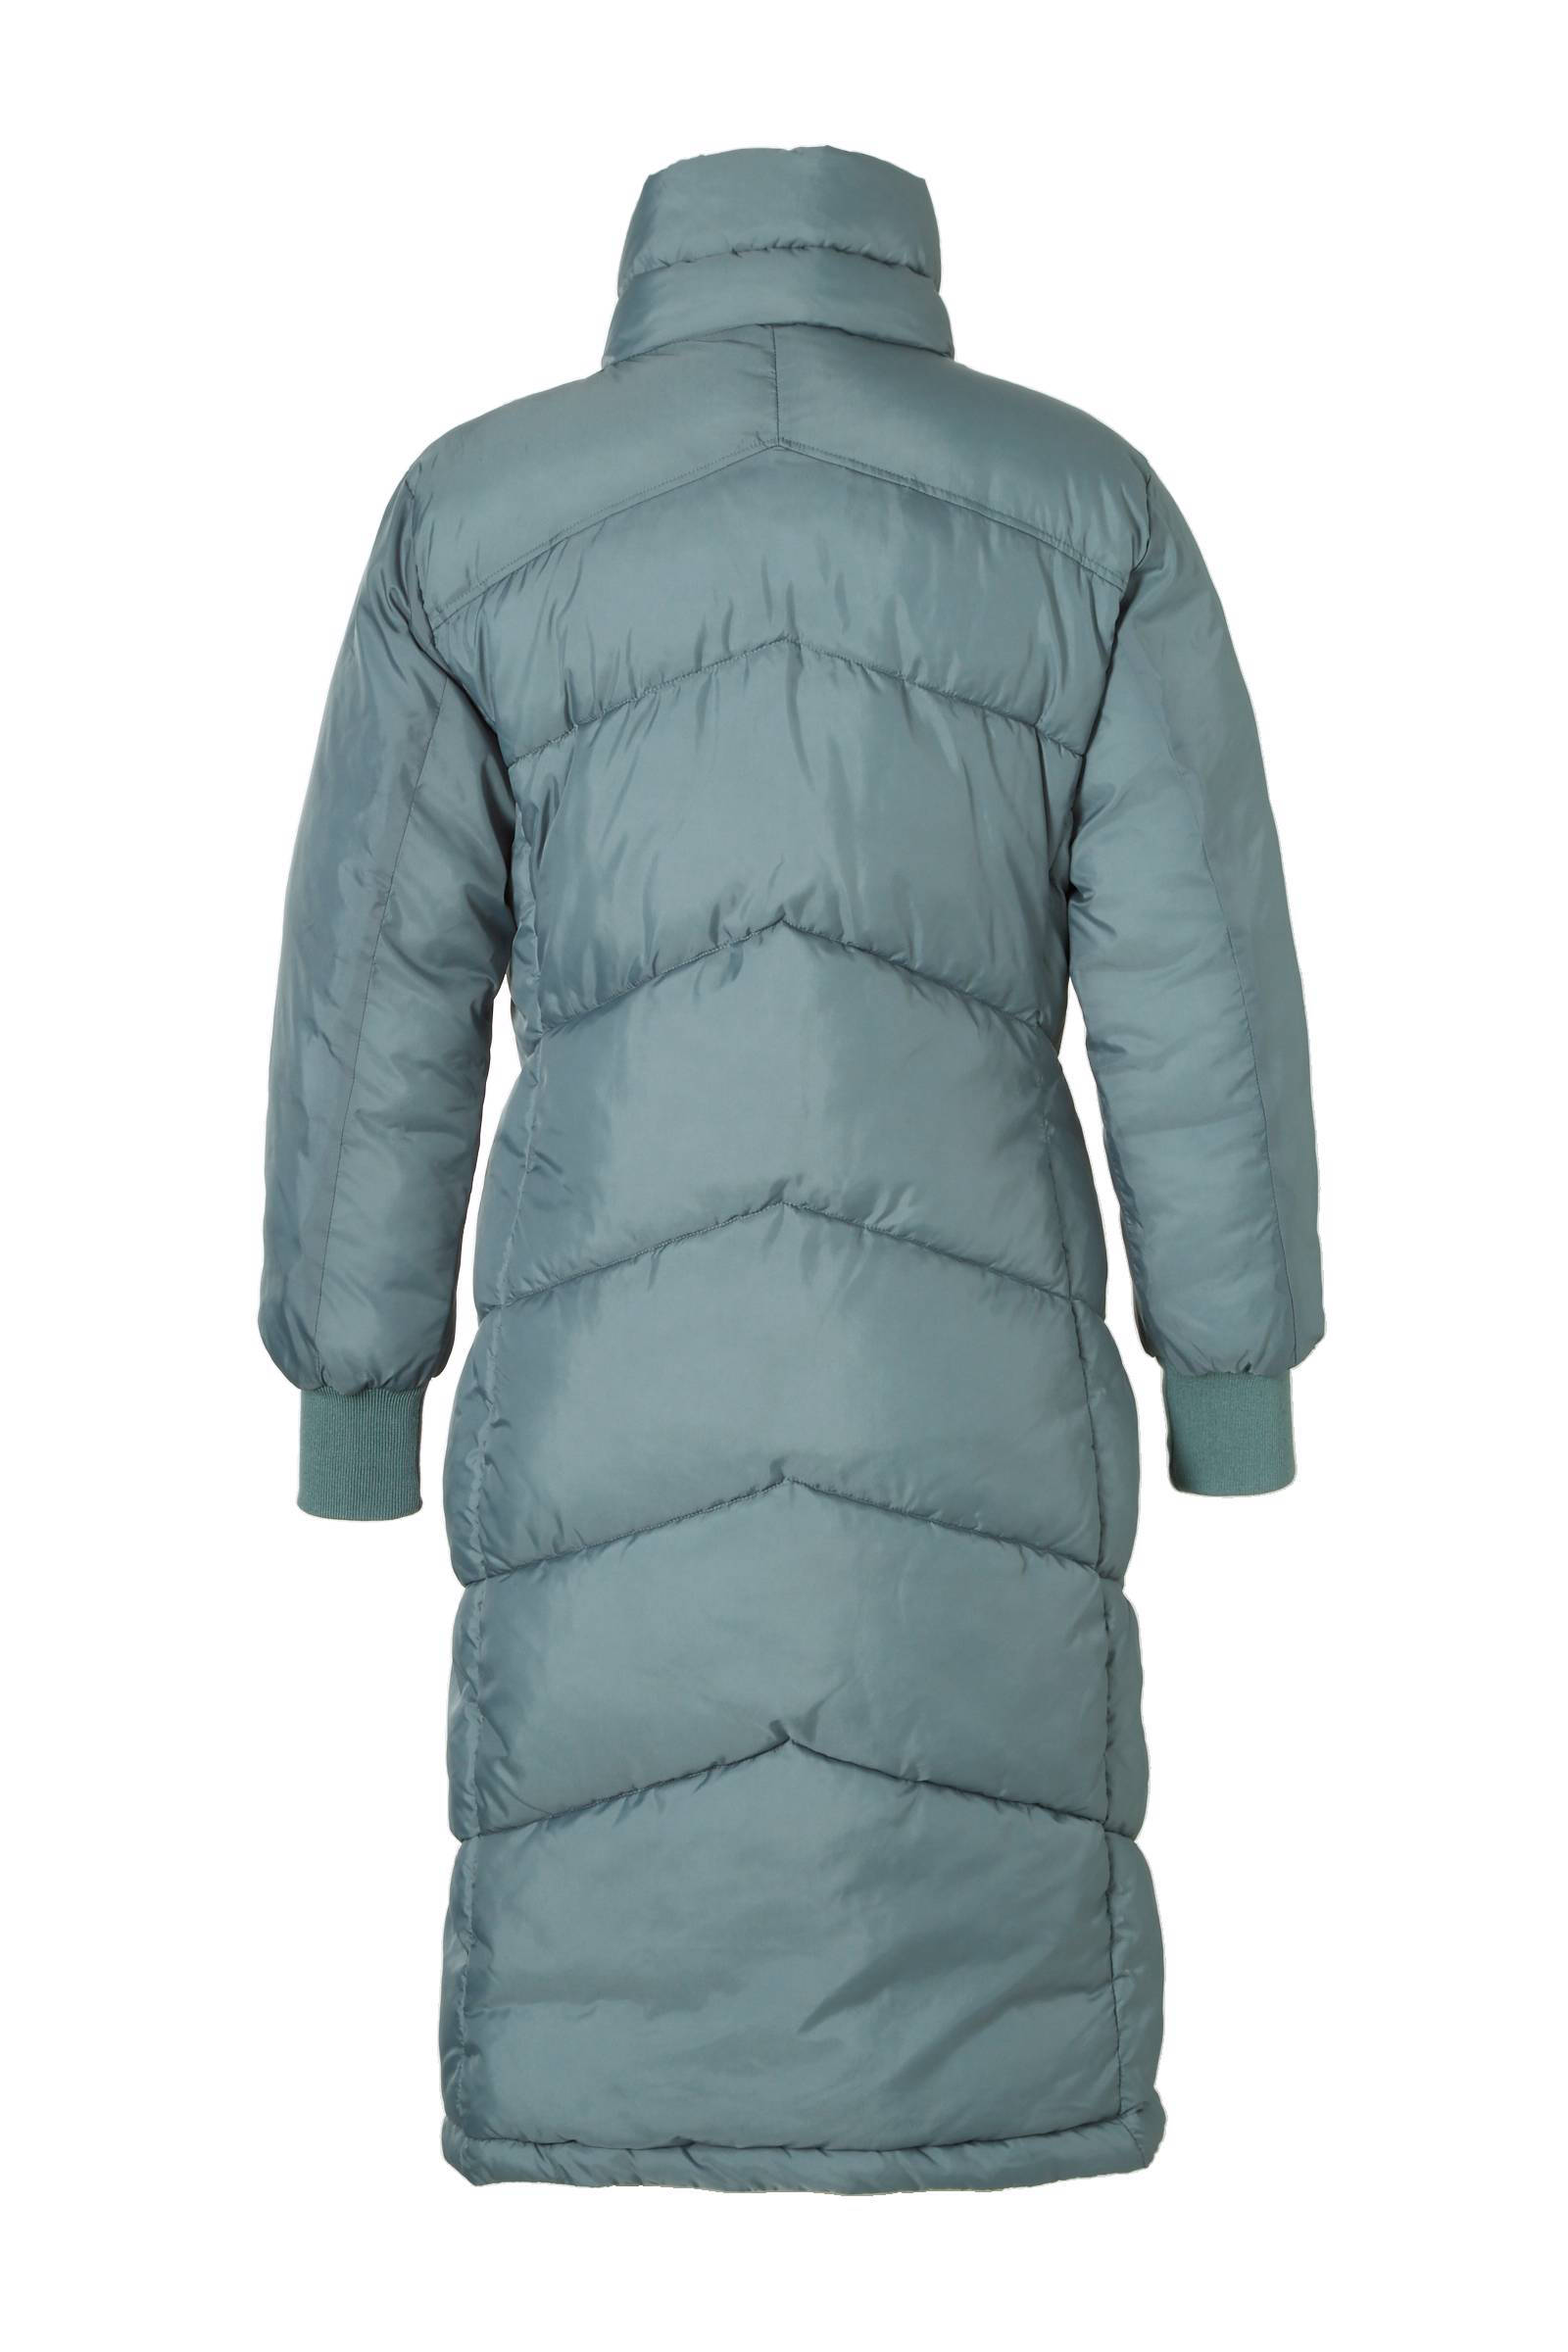 G Star Raw Winterjas Dames UIG07 TLYP